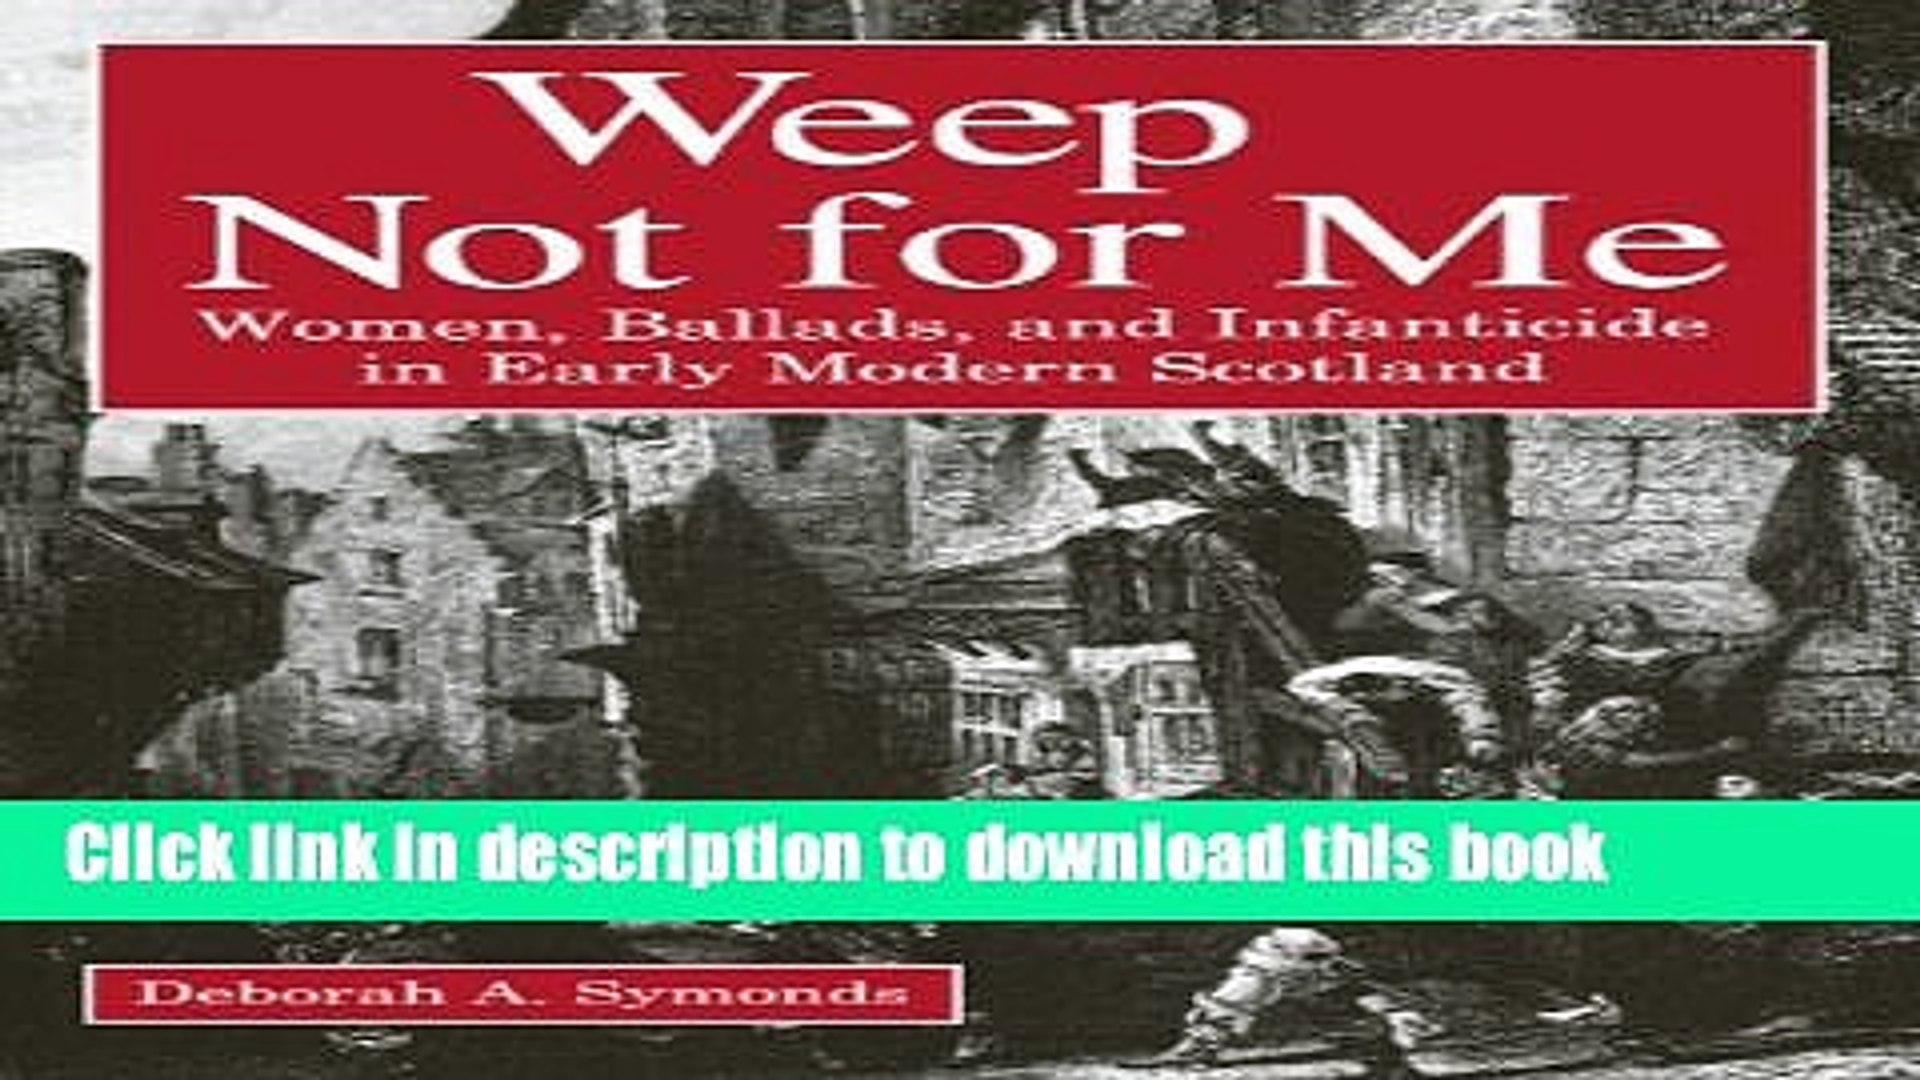 Download Weep Not for Me: Women, Ballads, and Infanticide in Early Modern Scotland Ebook Online